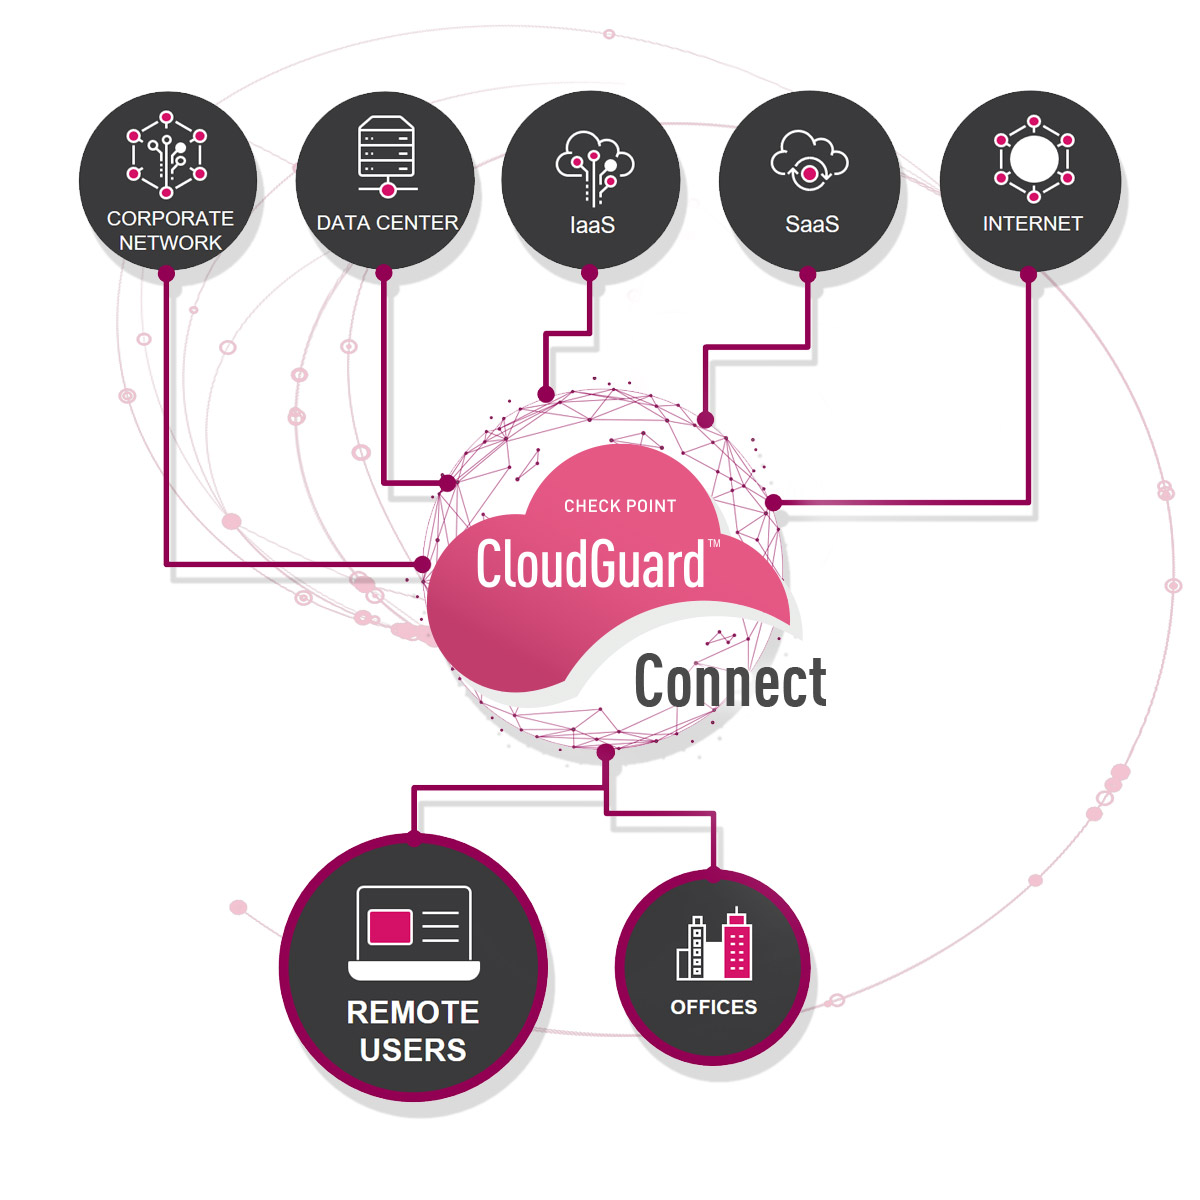 CloudGuard Connect Remote Users diagram